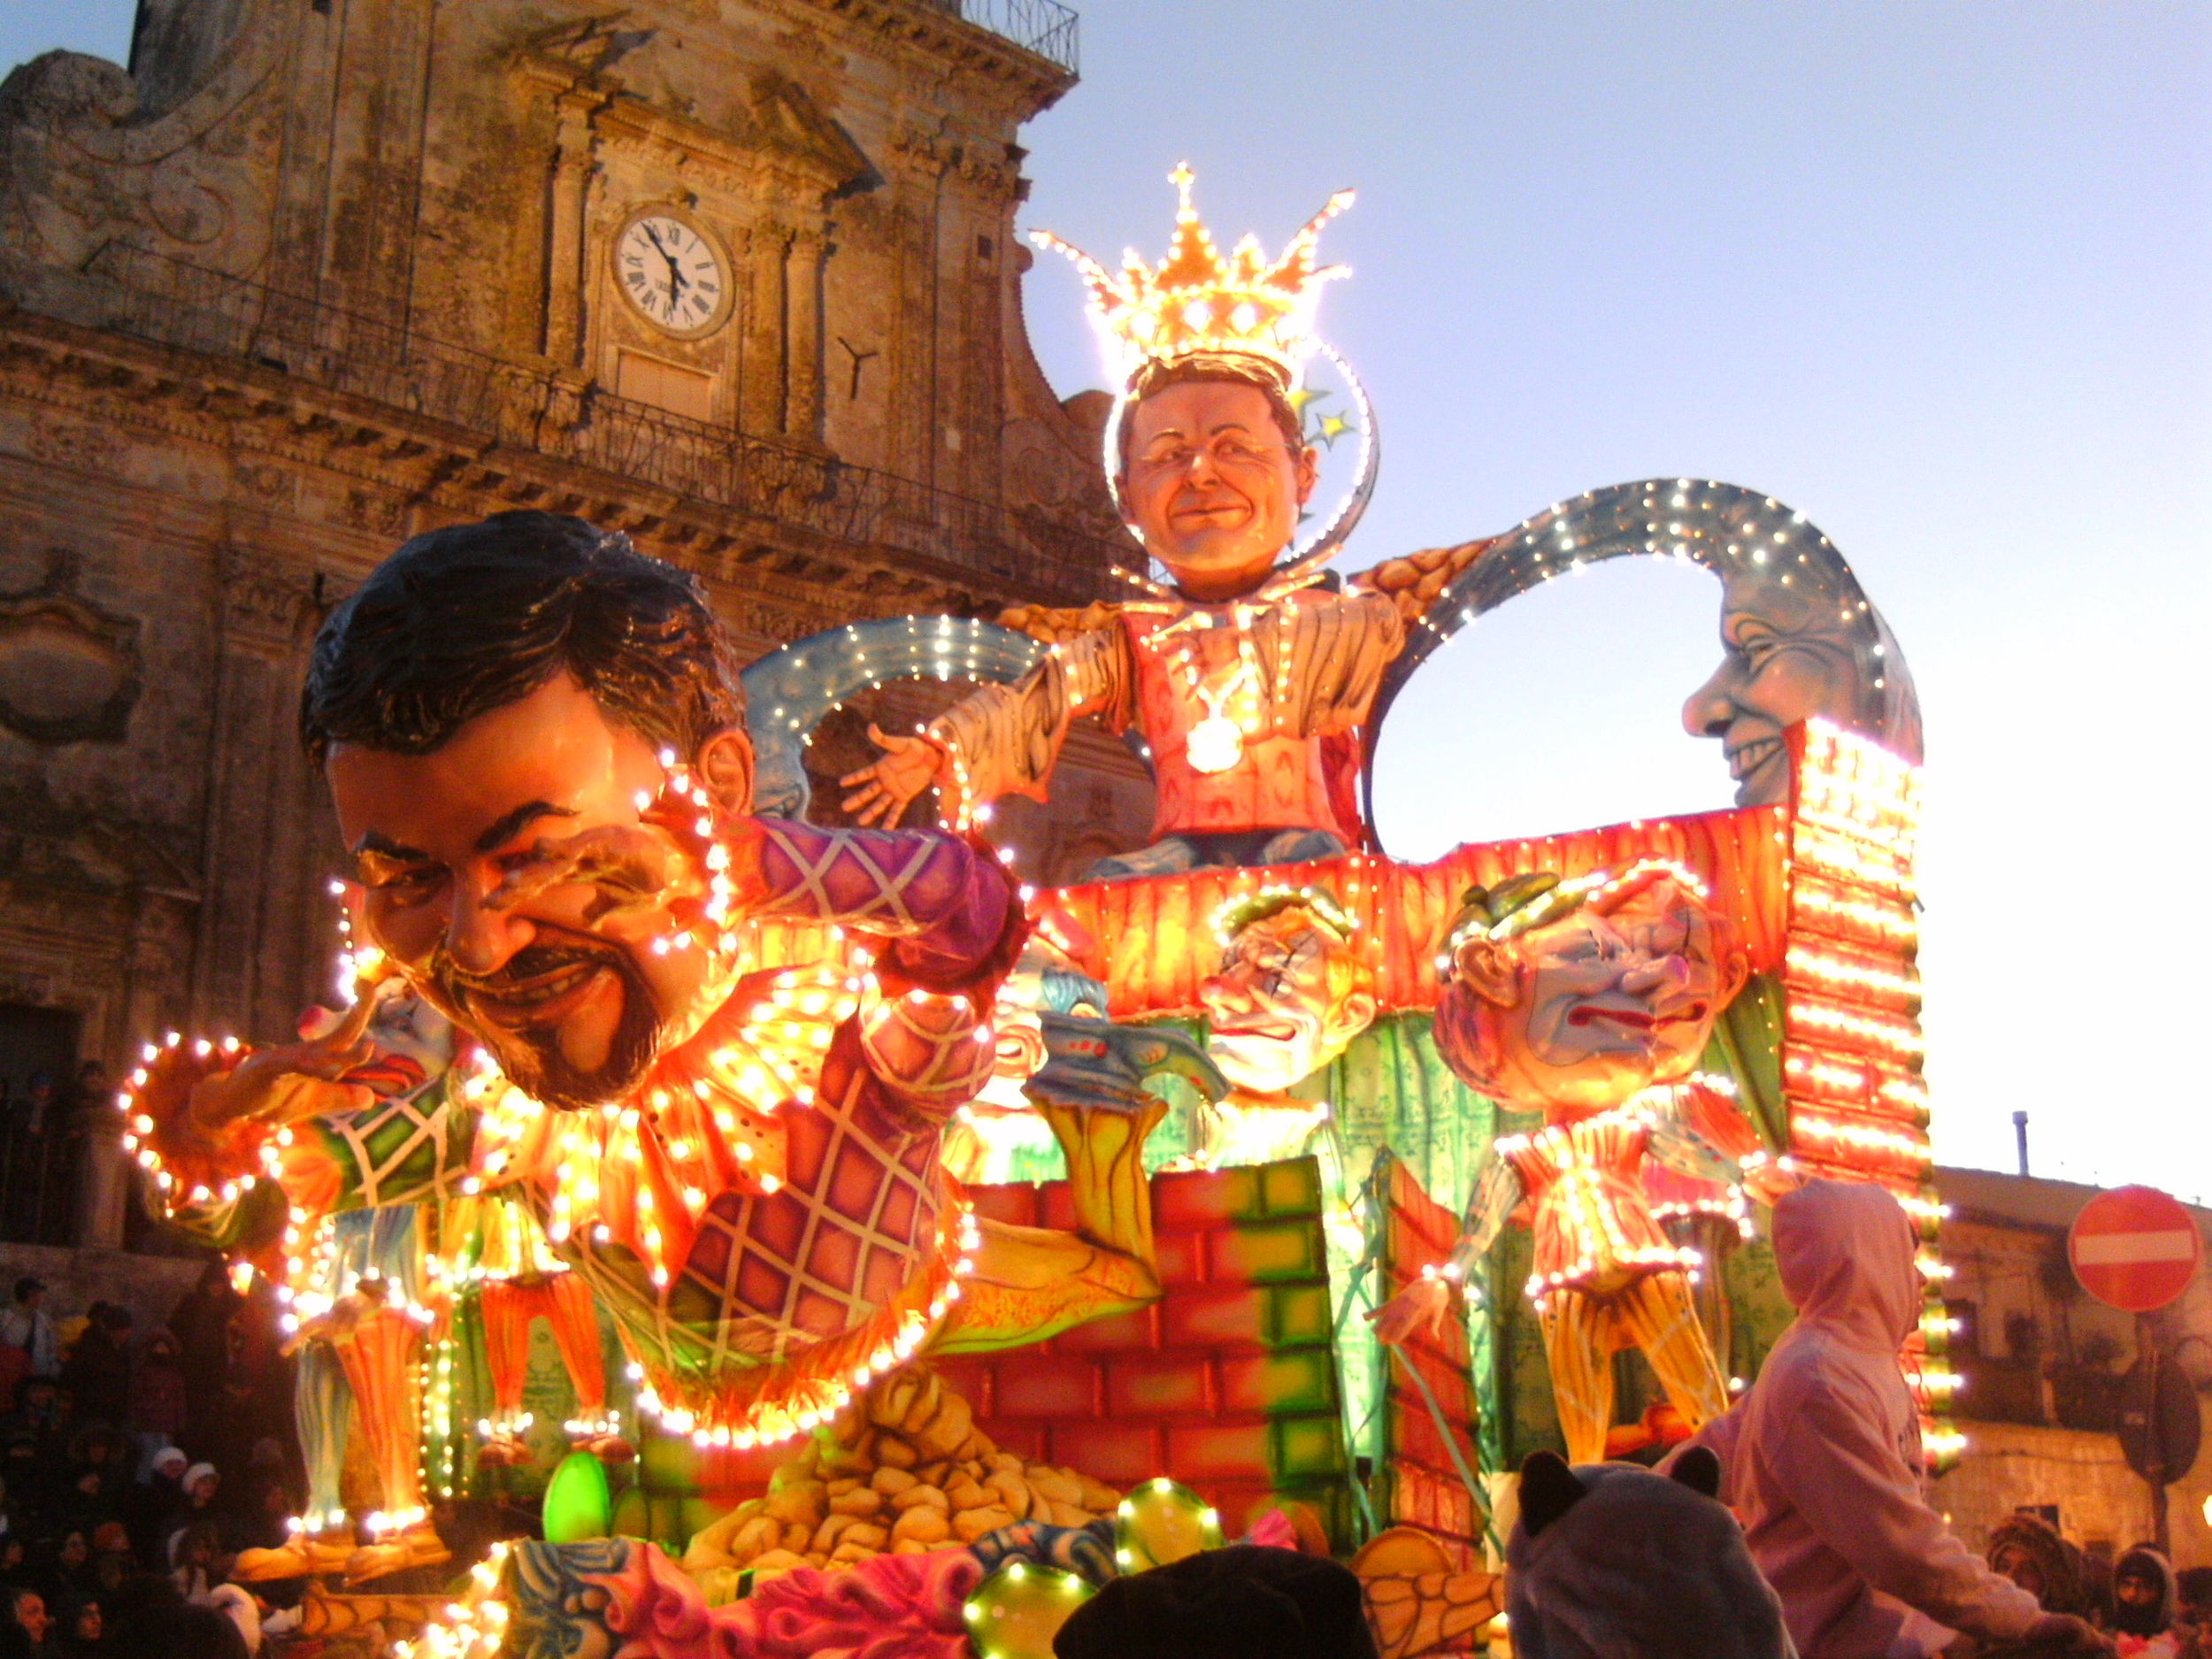 Carnival in Sicily, Palazzolo Acreide  Photo  by Mikystar  /  CC BY-SA 3.0